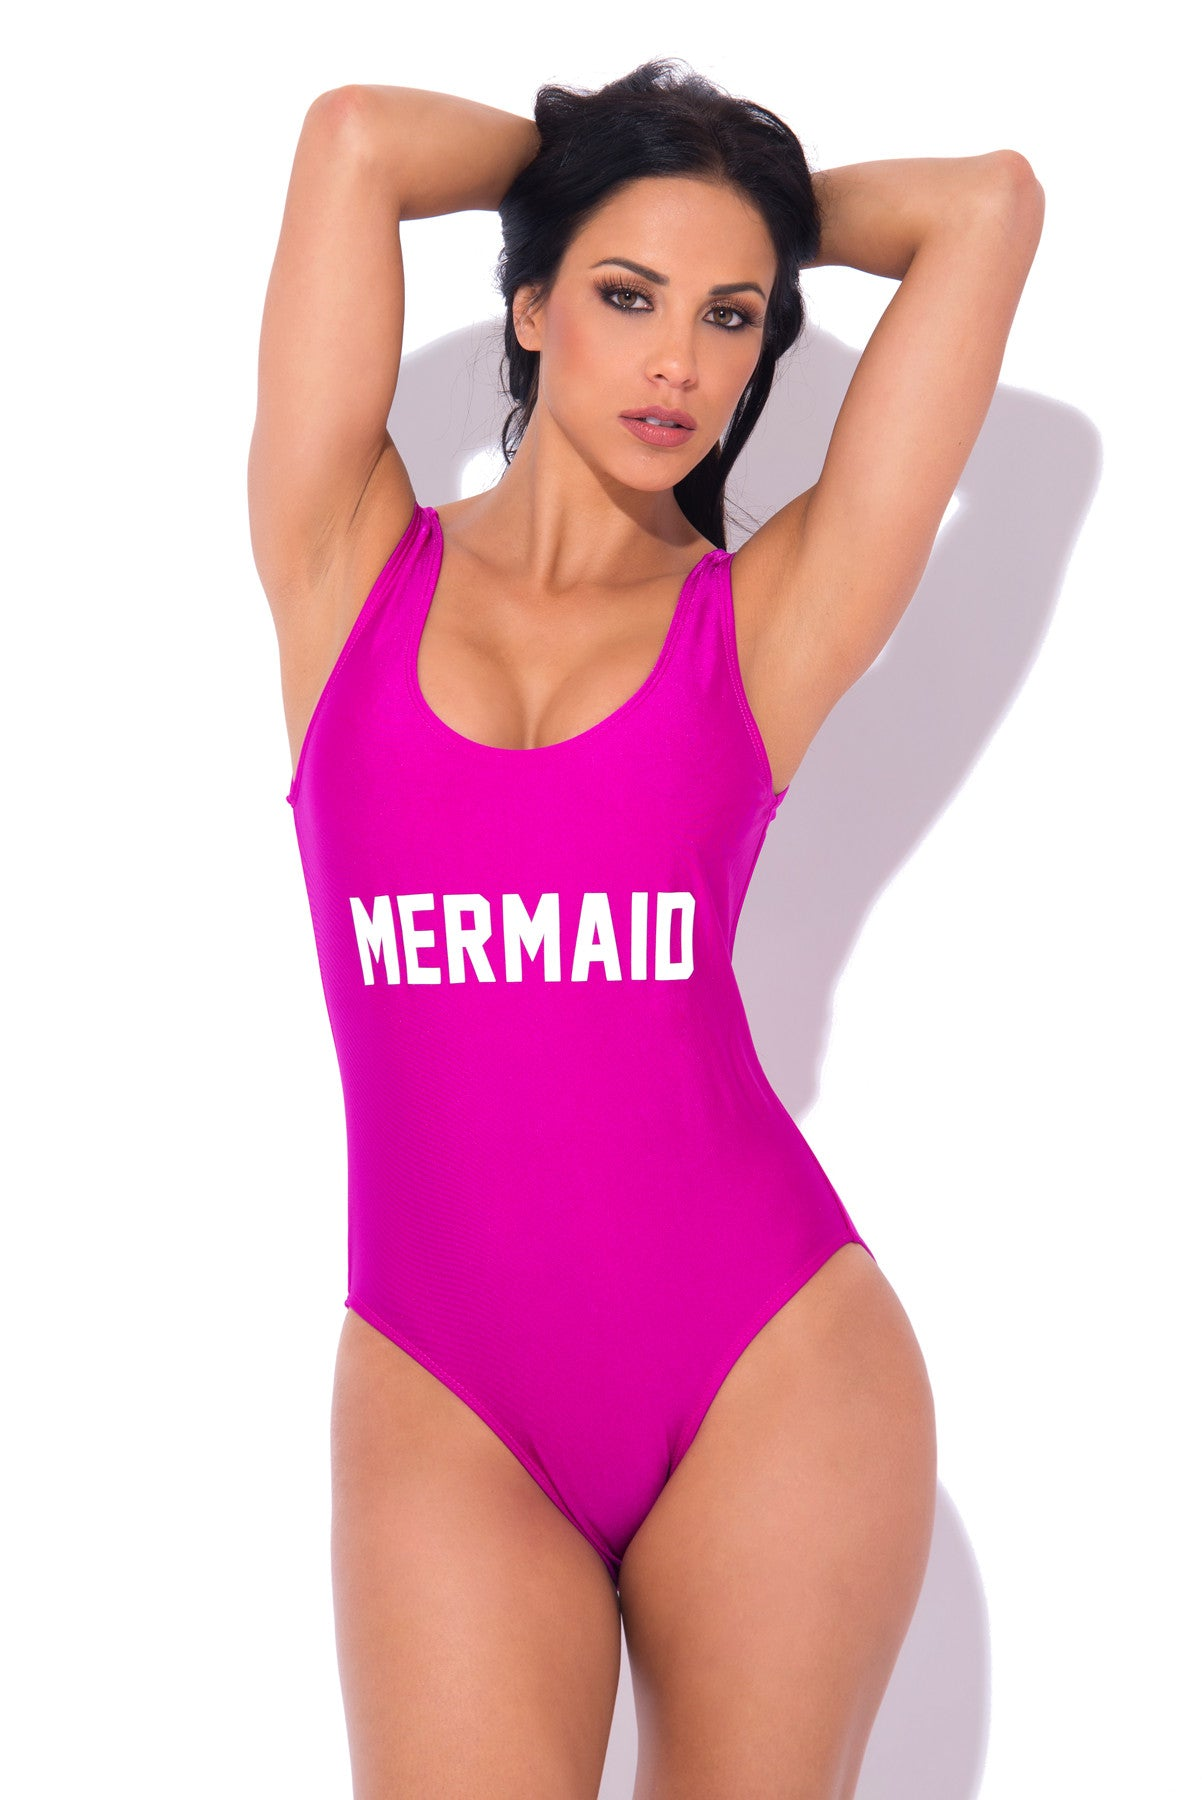 Mermaid One Piece Swimsuit PURPLE - Fashion Effect Store  - 1